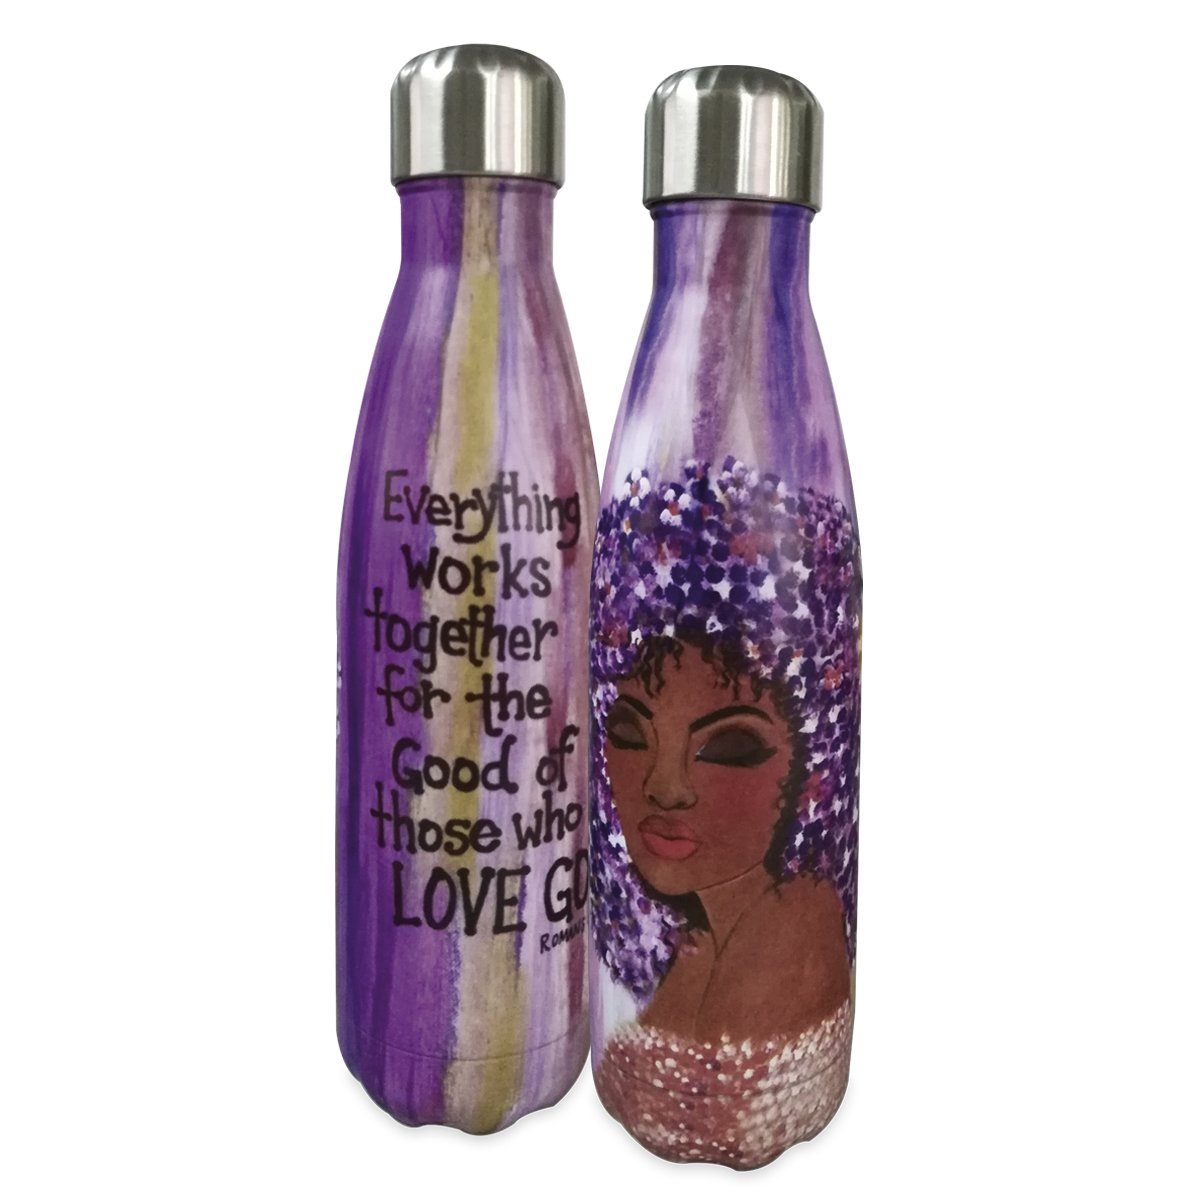 Love GOD: African American Stainless Steel Bottle by GBaby